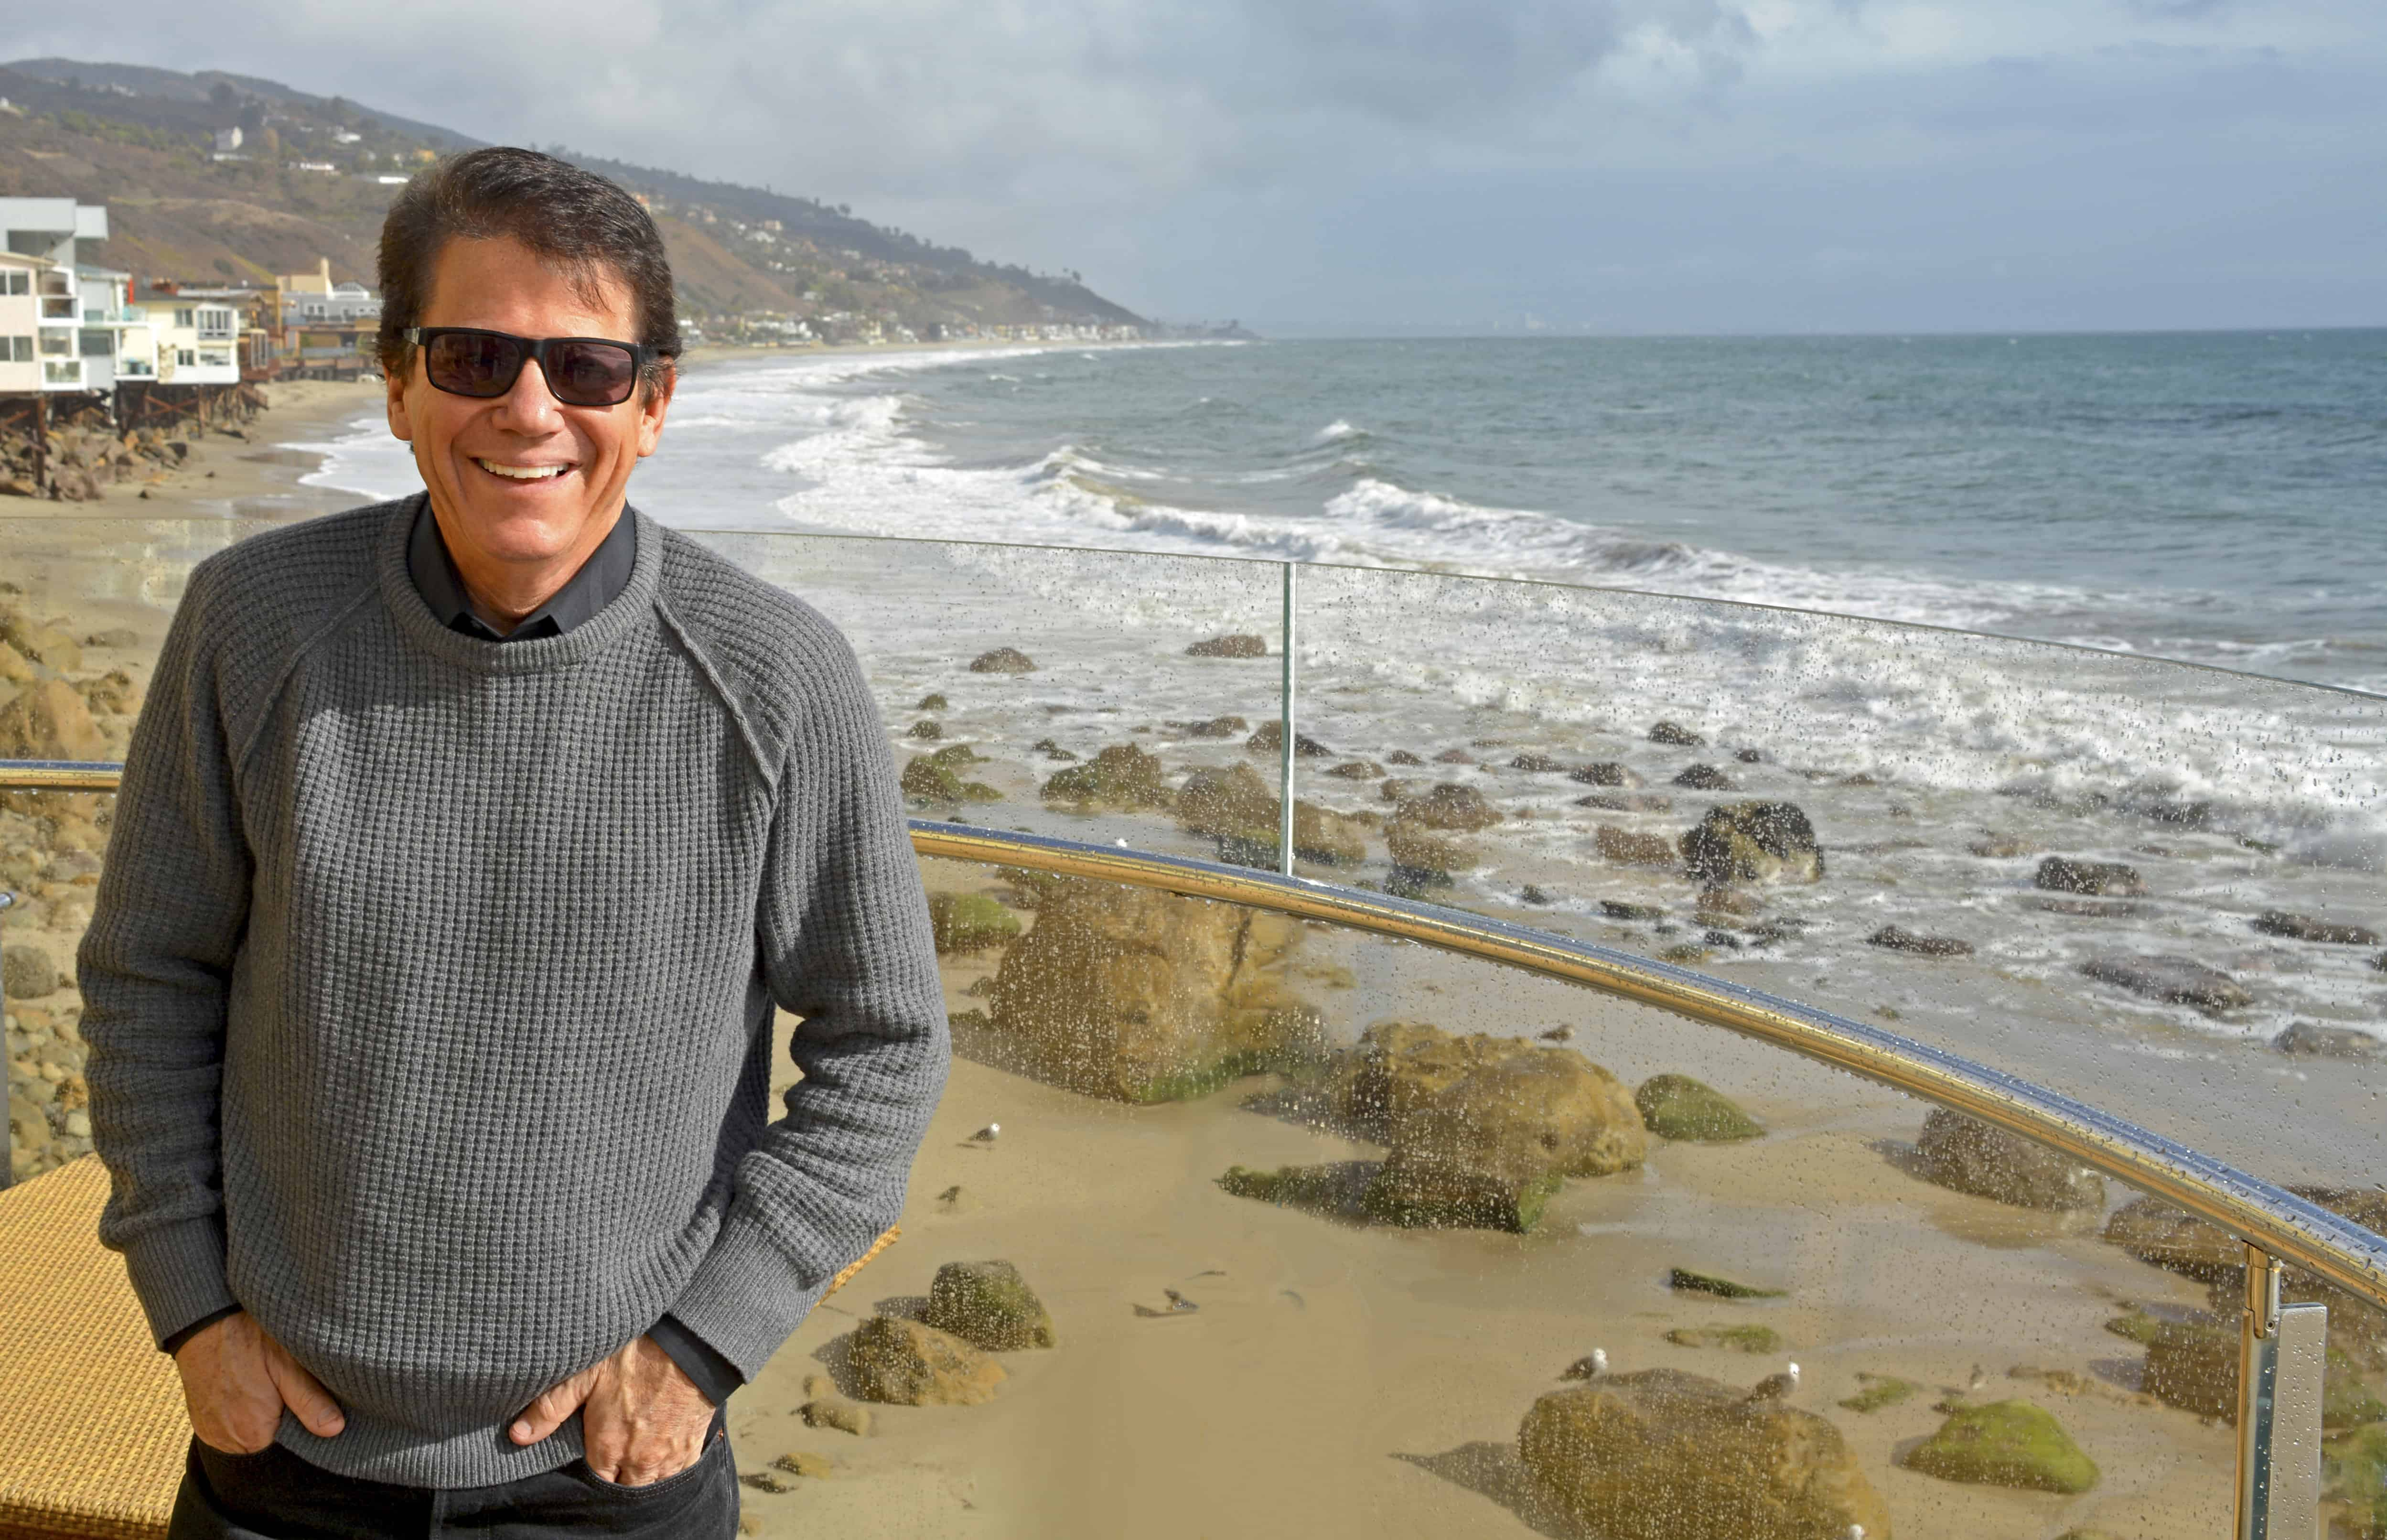 Anson Williams today